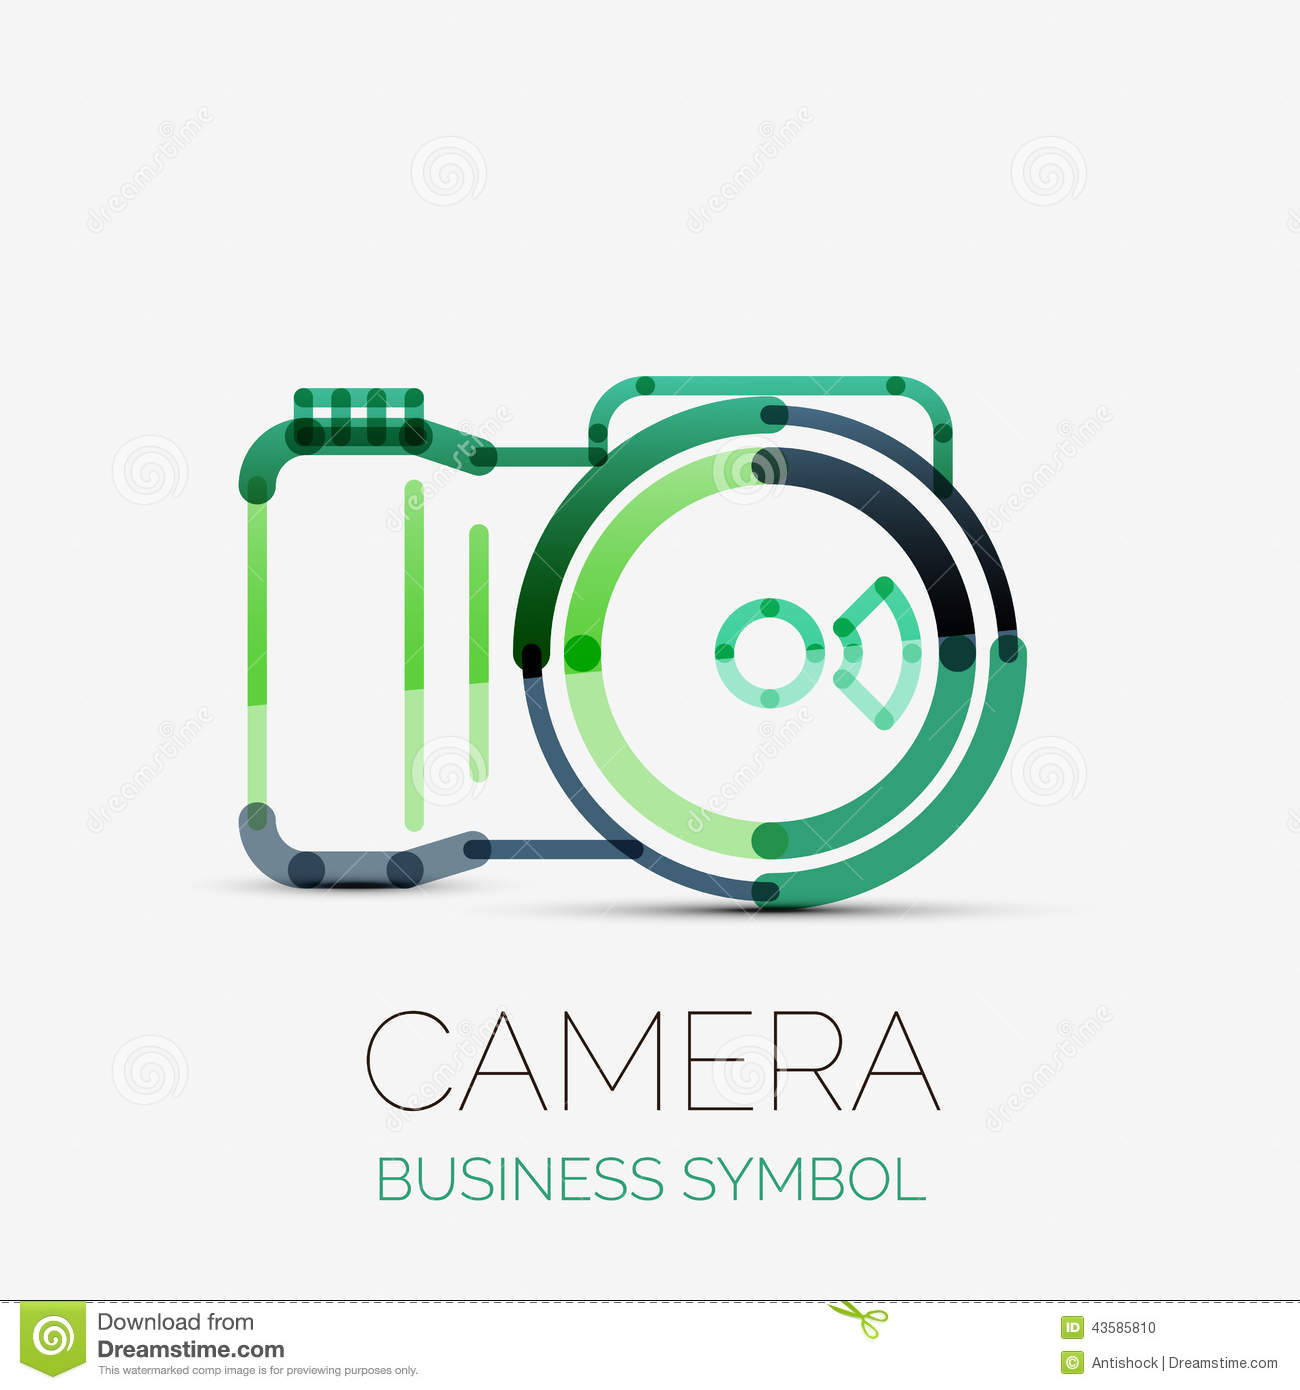 Camera Company Logo Camera icon company logo,